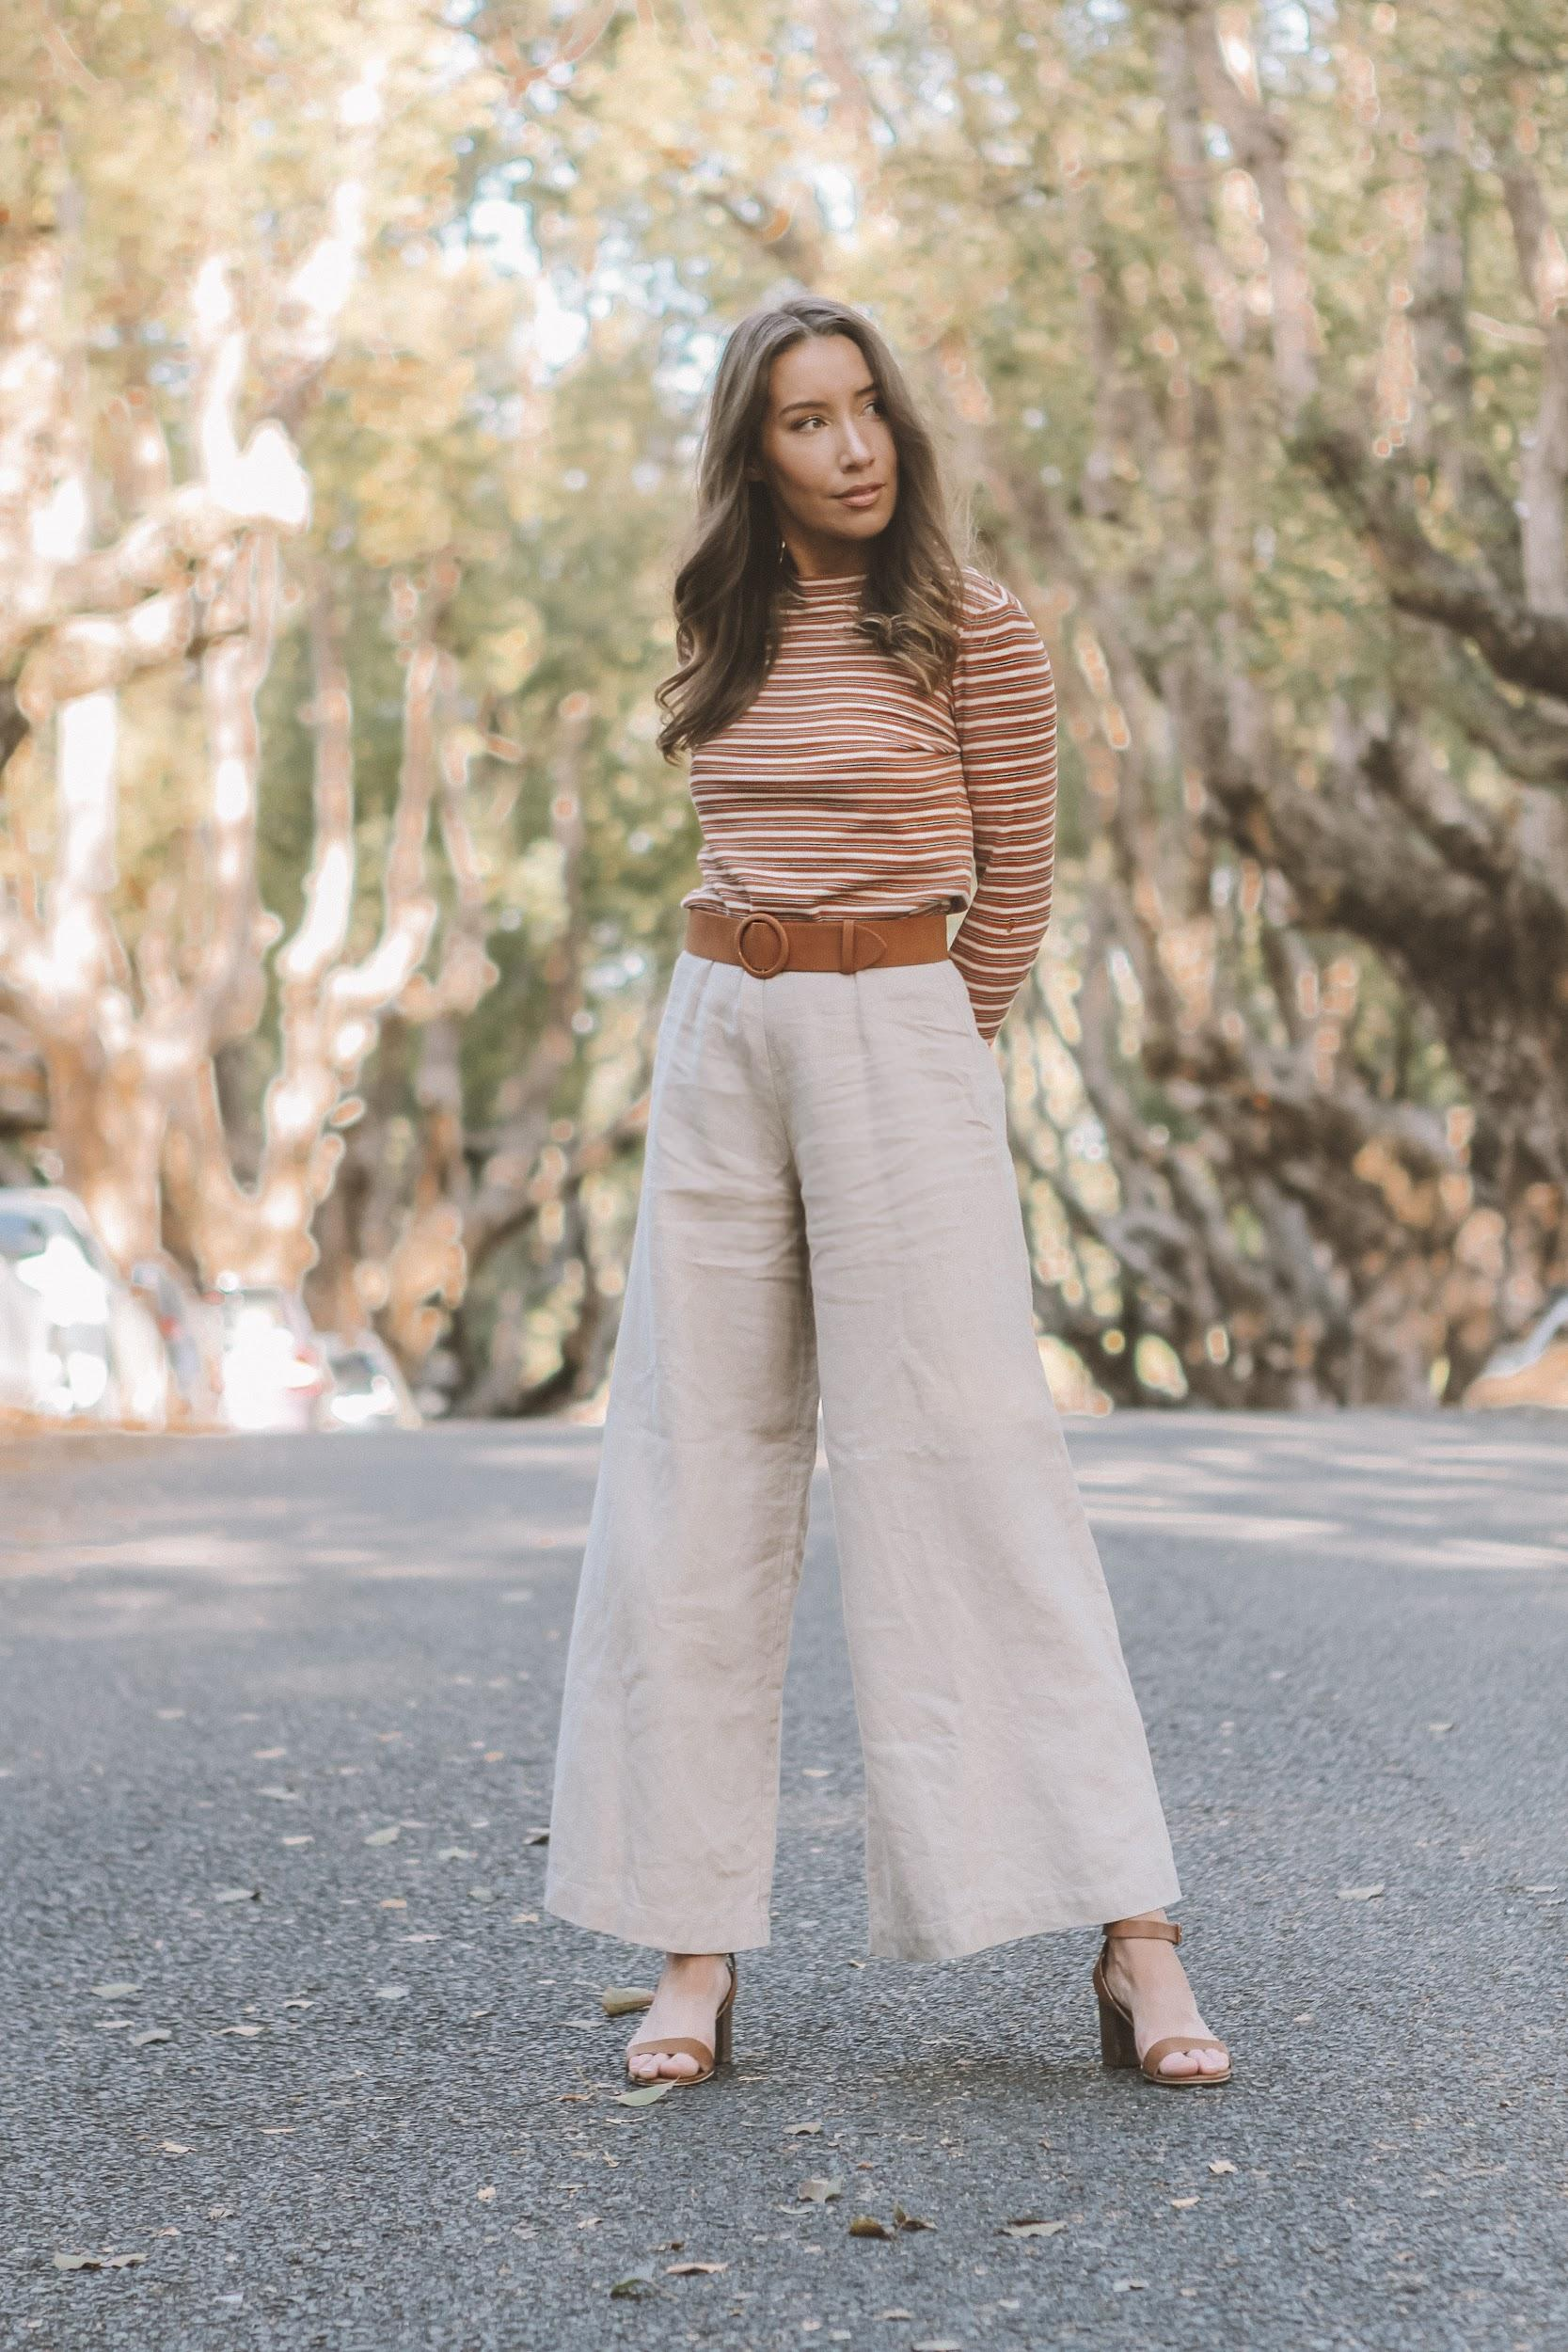 Neutral stripes and high waisted pants for fall | A Week Of Consciously Curated Outfits With Amber Boyers, Founder Of BAIIA And The Conscious Cut on The Good Trade